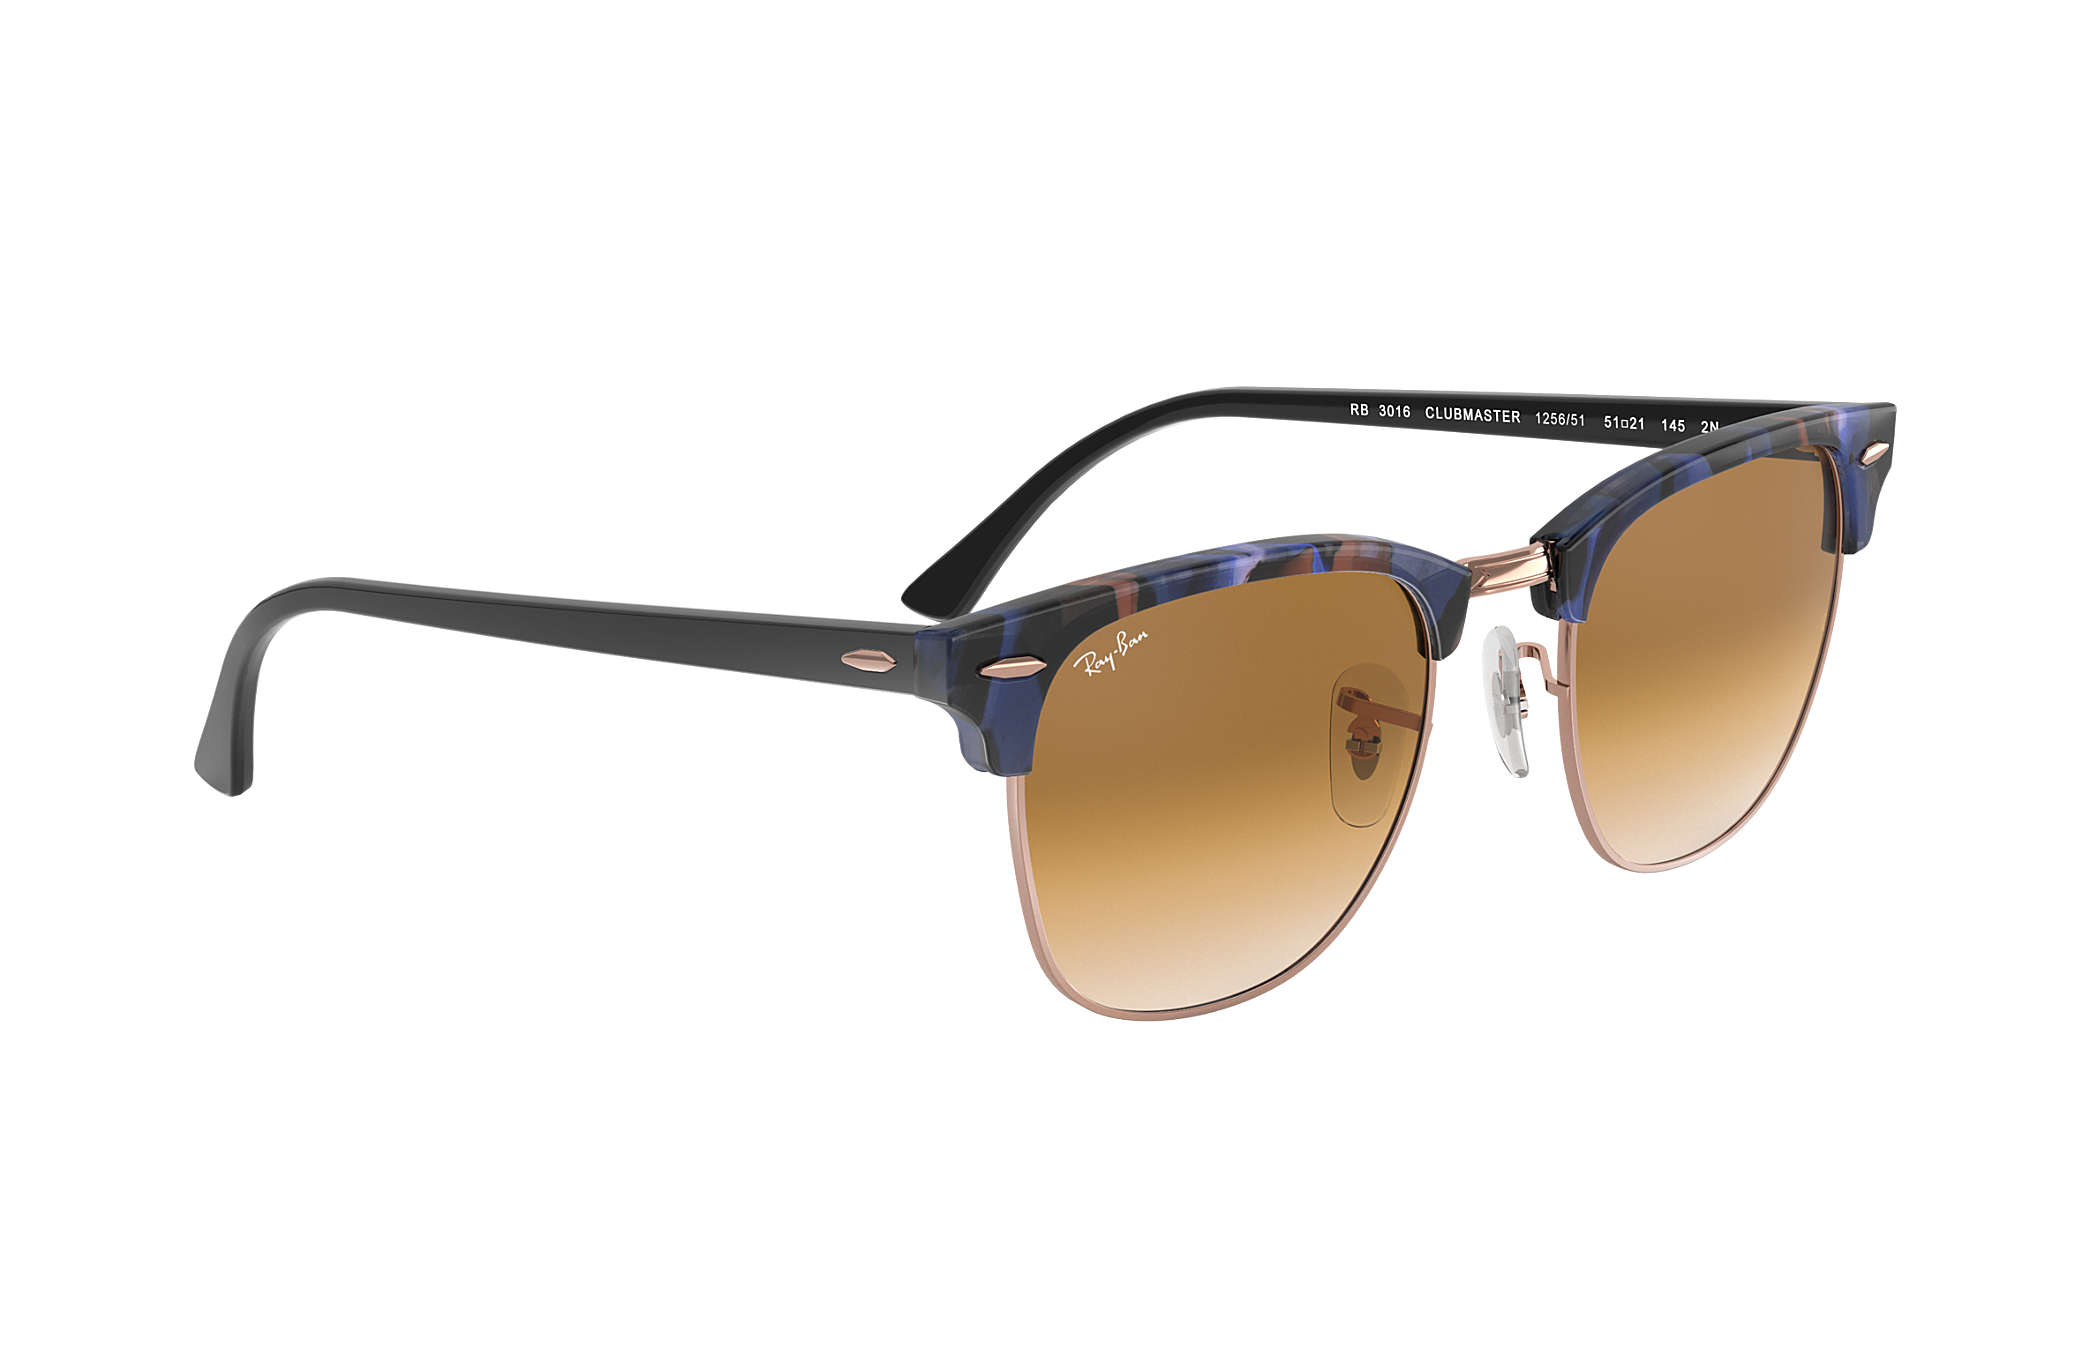 ... Ray-Ban 0RB3016-CLUBMASTER FLECK Spotted Brown and Blue,Tartaruga   Preto SUN ef978c99ac